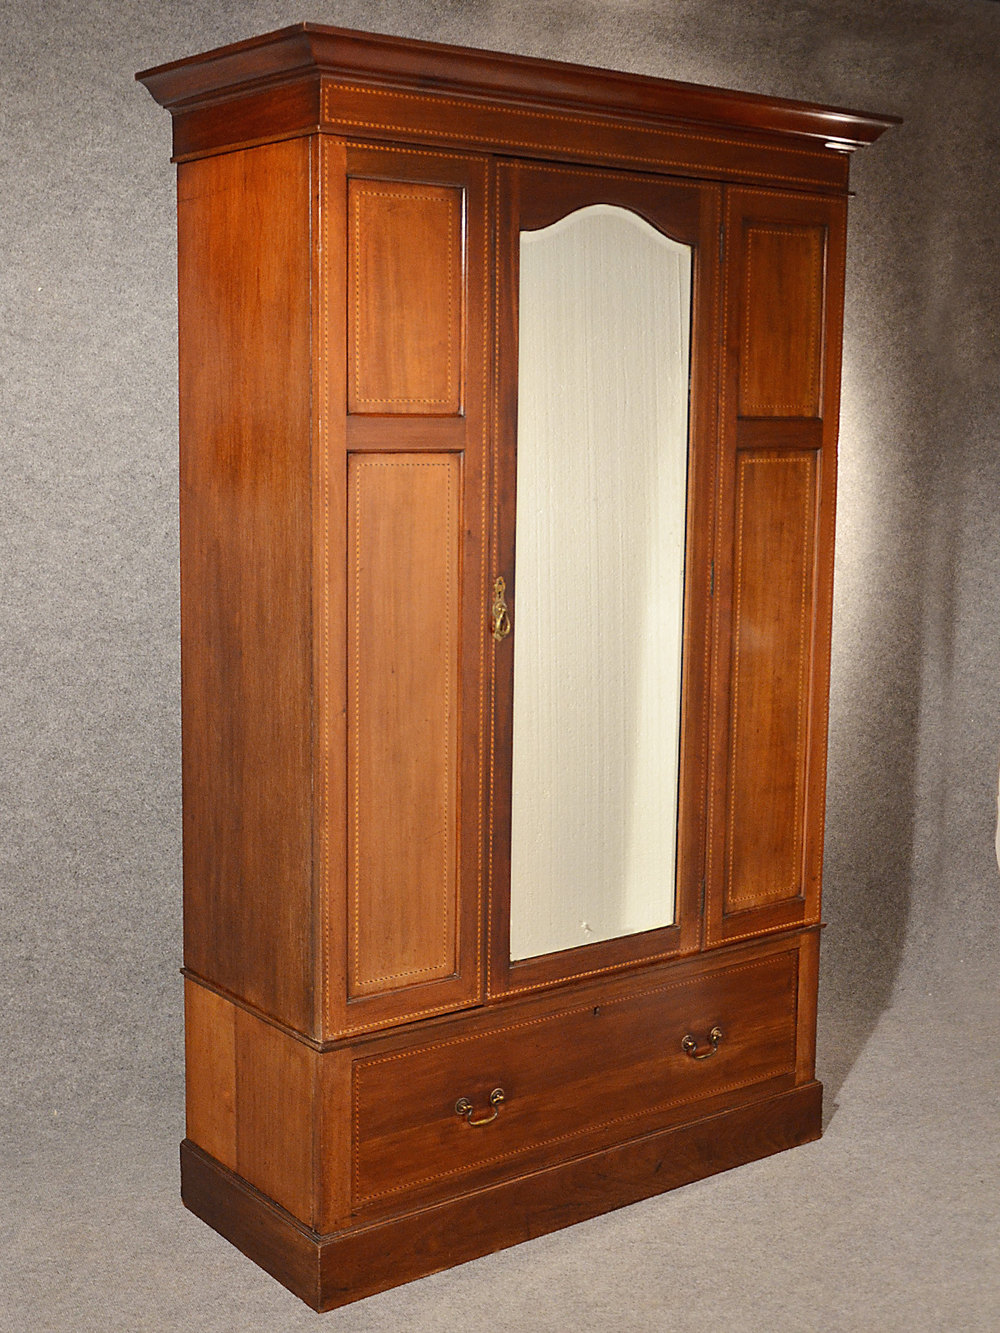 antique wardrobe armoire mirror door maple co antiques. Black Bedroom Furniture Sets. Home Design Ideas